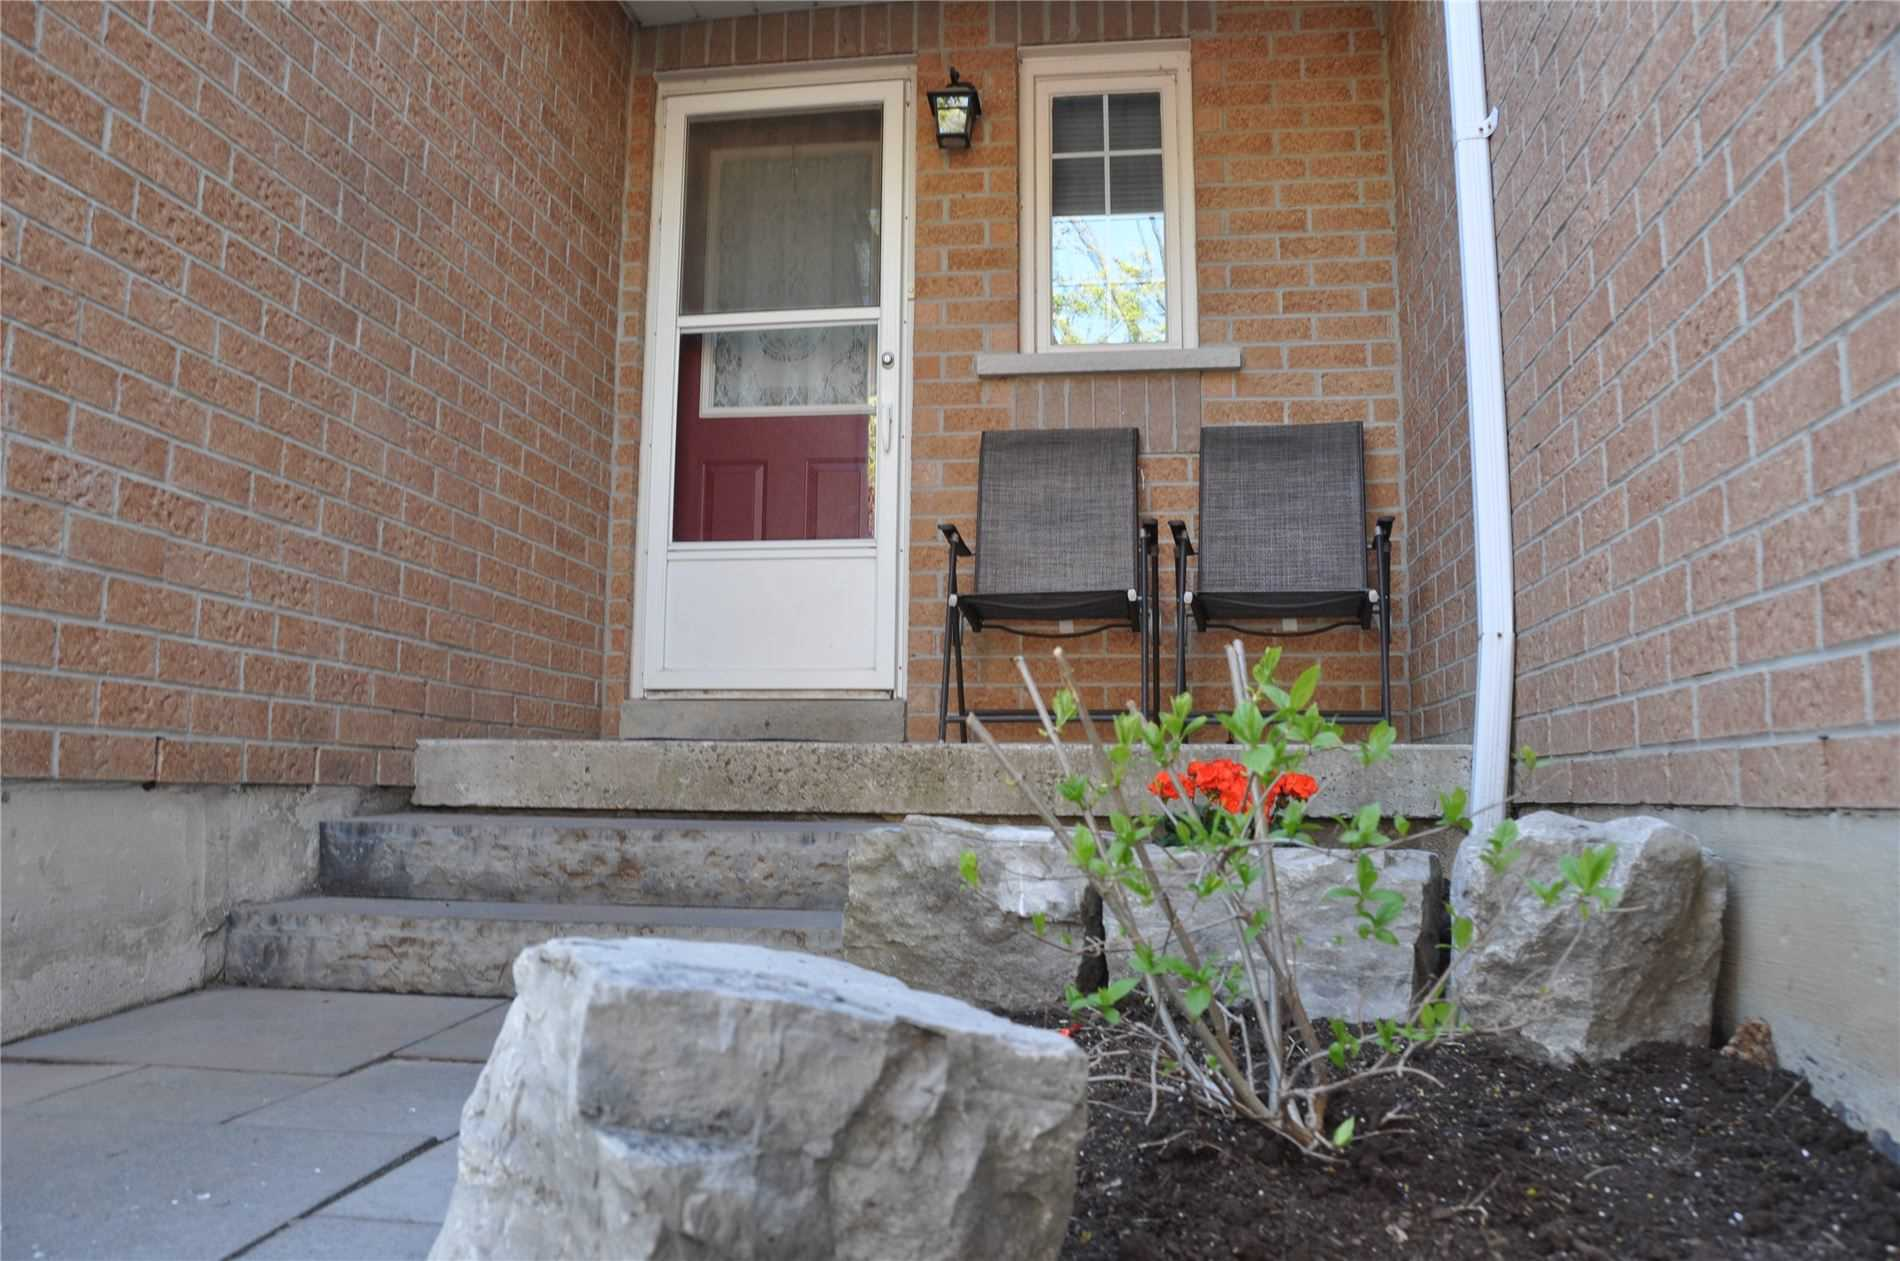 Image 5 of 12 showing inside of 3 Bedroom Condo Townhouse 2-Storey for Sale at 22 Macintyre Lane Unit# 11, Ajax L1T3X3